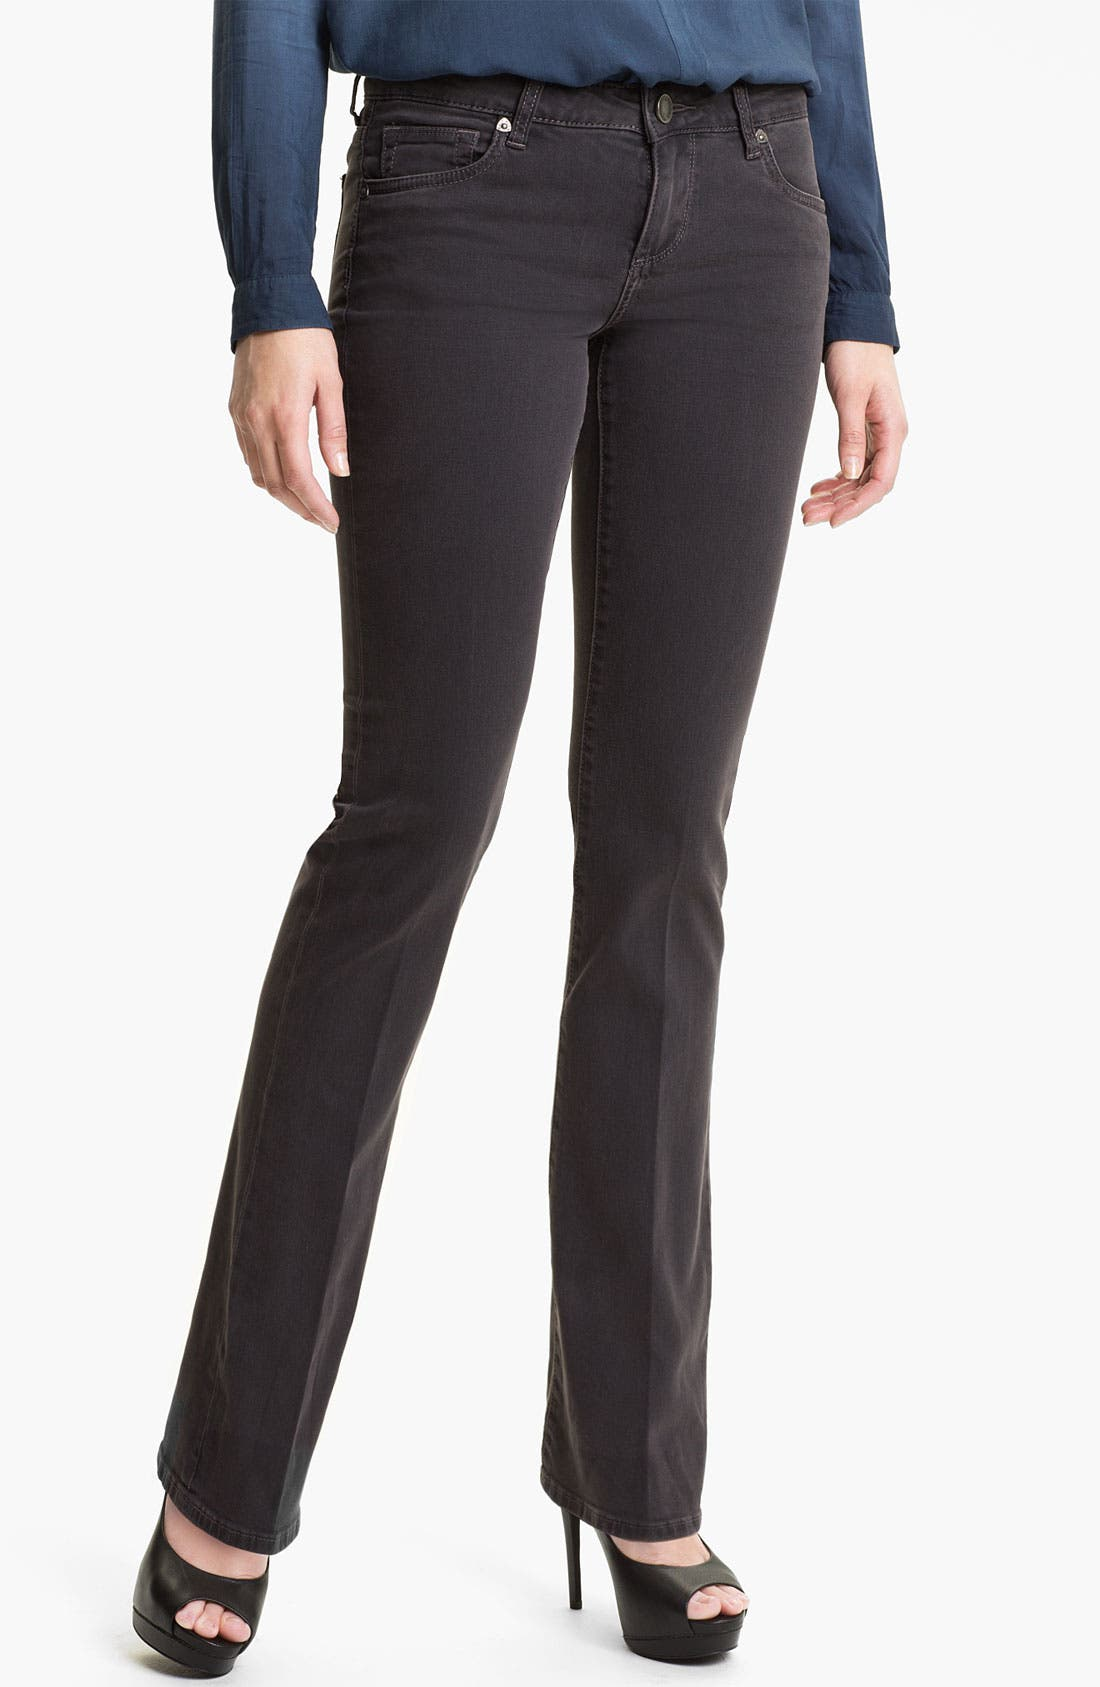 Alternate Image 1 Selected - KUT from the Kloth Baby Bootcut Jeans (Gorgeous) (Online Exclusive)